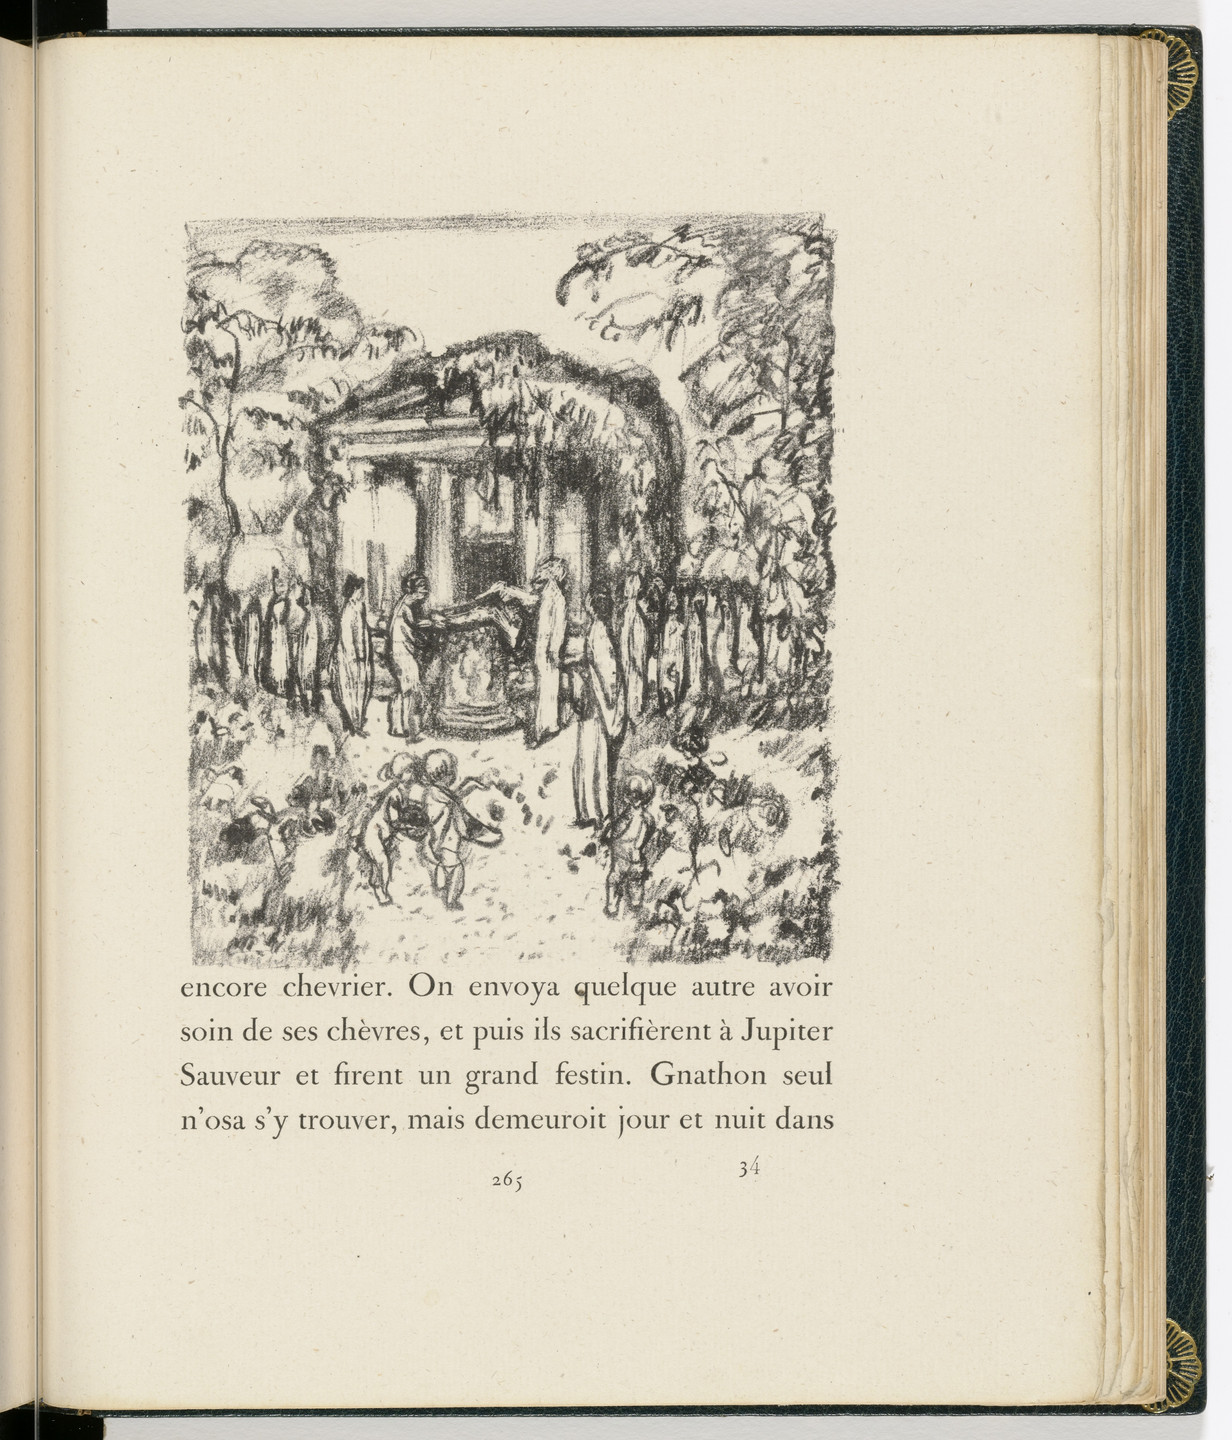 Pierre Bonnard. In-text plate (page 265) from Daphnis et Chloé. 1902